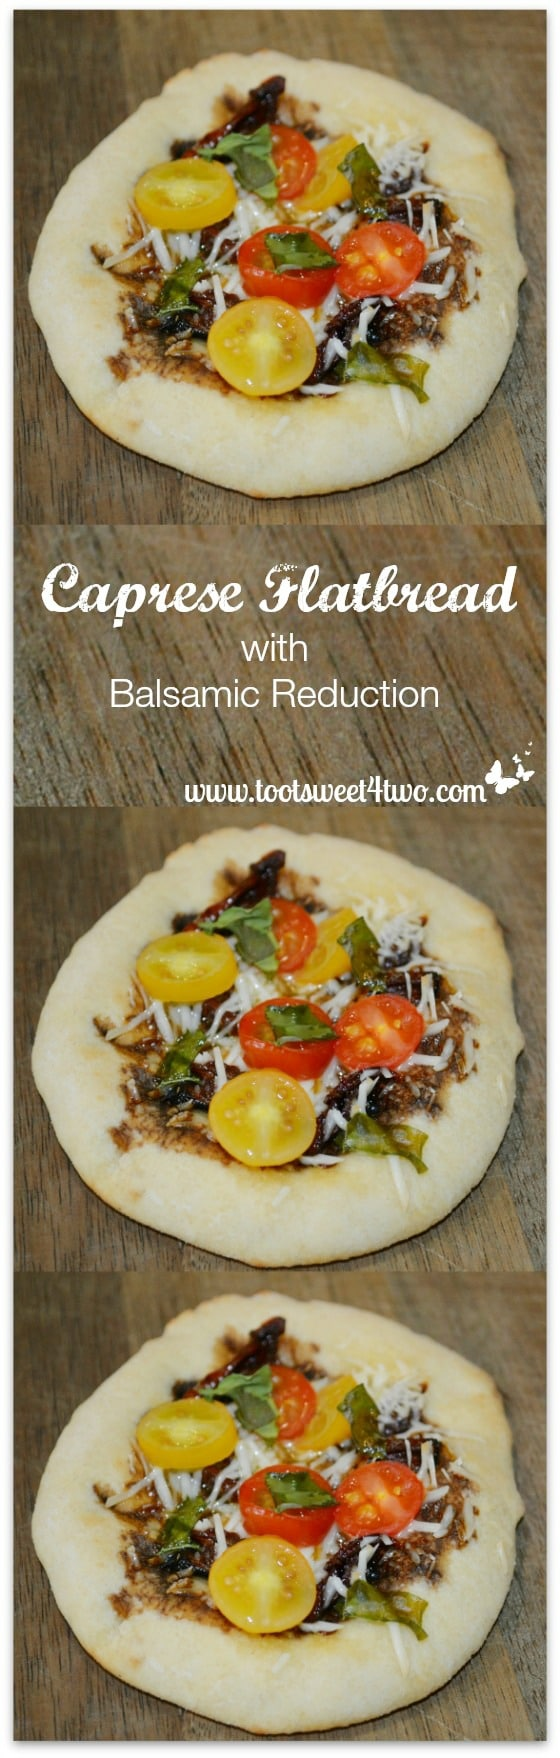 Caprese Flatbread with Balsamic Reduction Pic 5